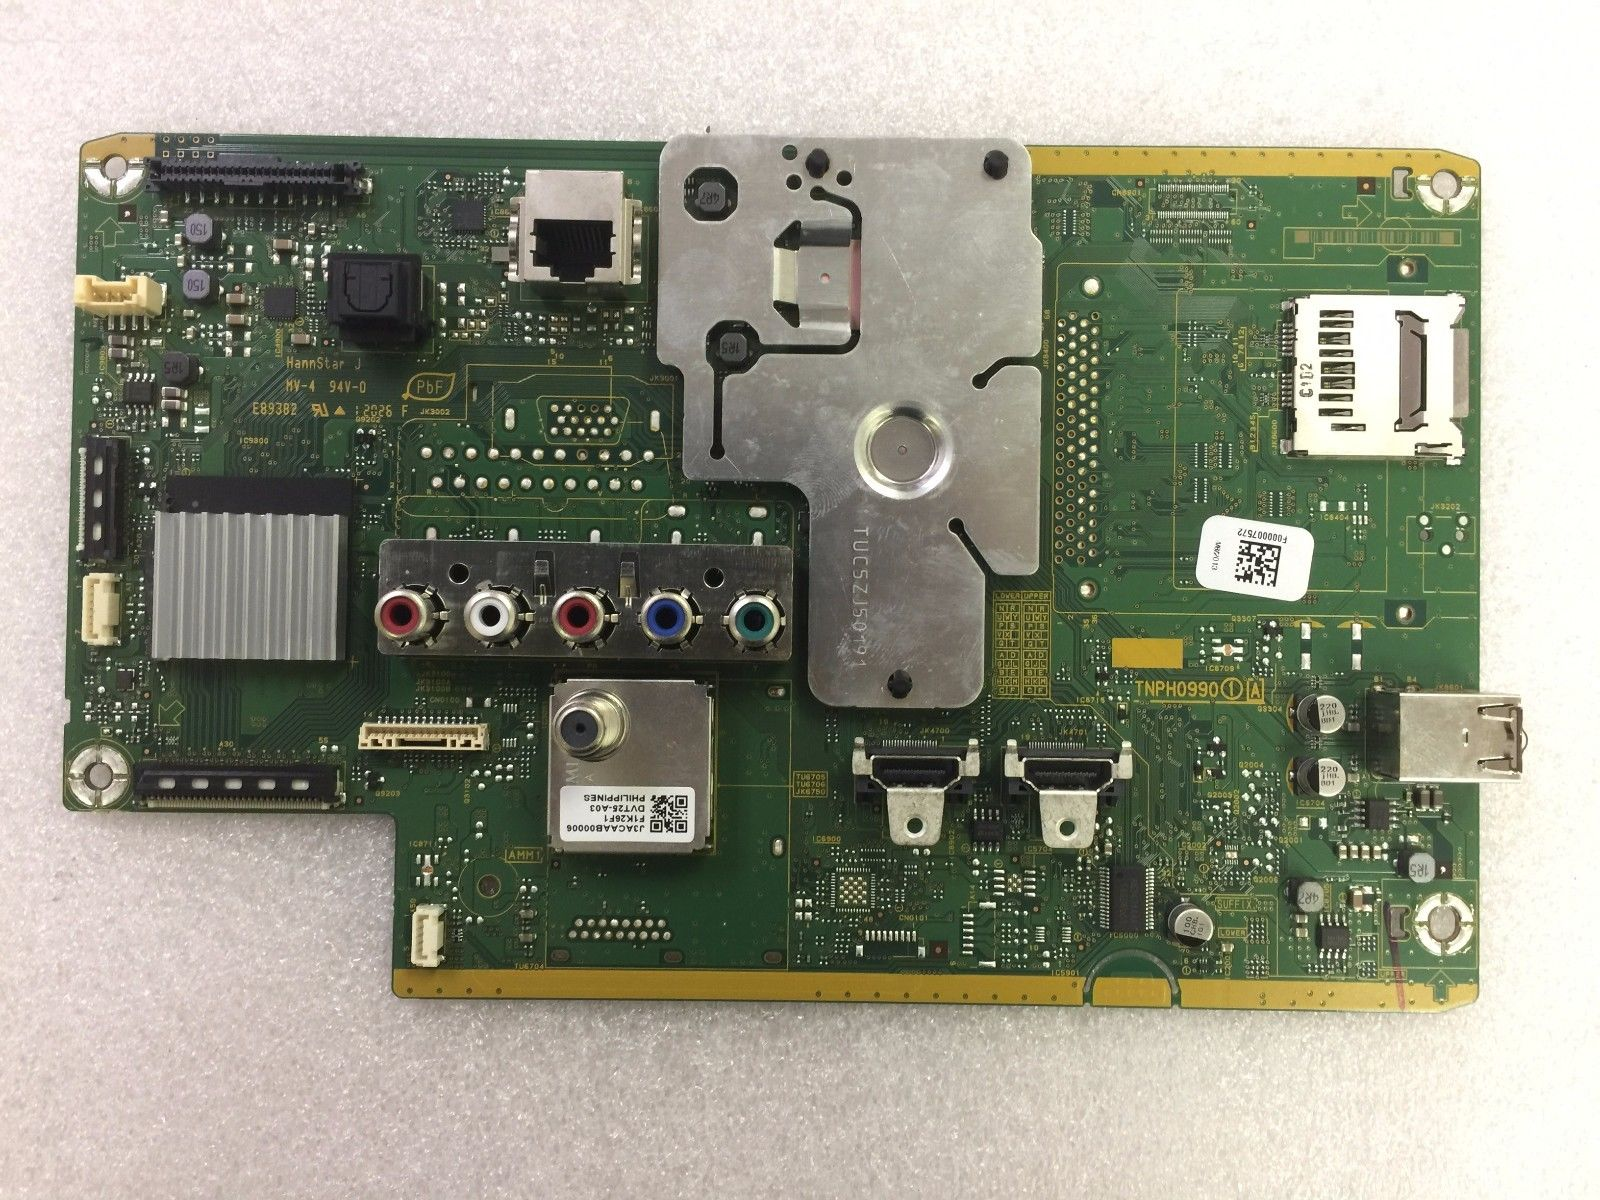 New Panasonic TXN/A1RHUUS (TNPH0990) 1 A Board for TC-P50XT500